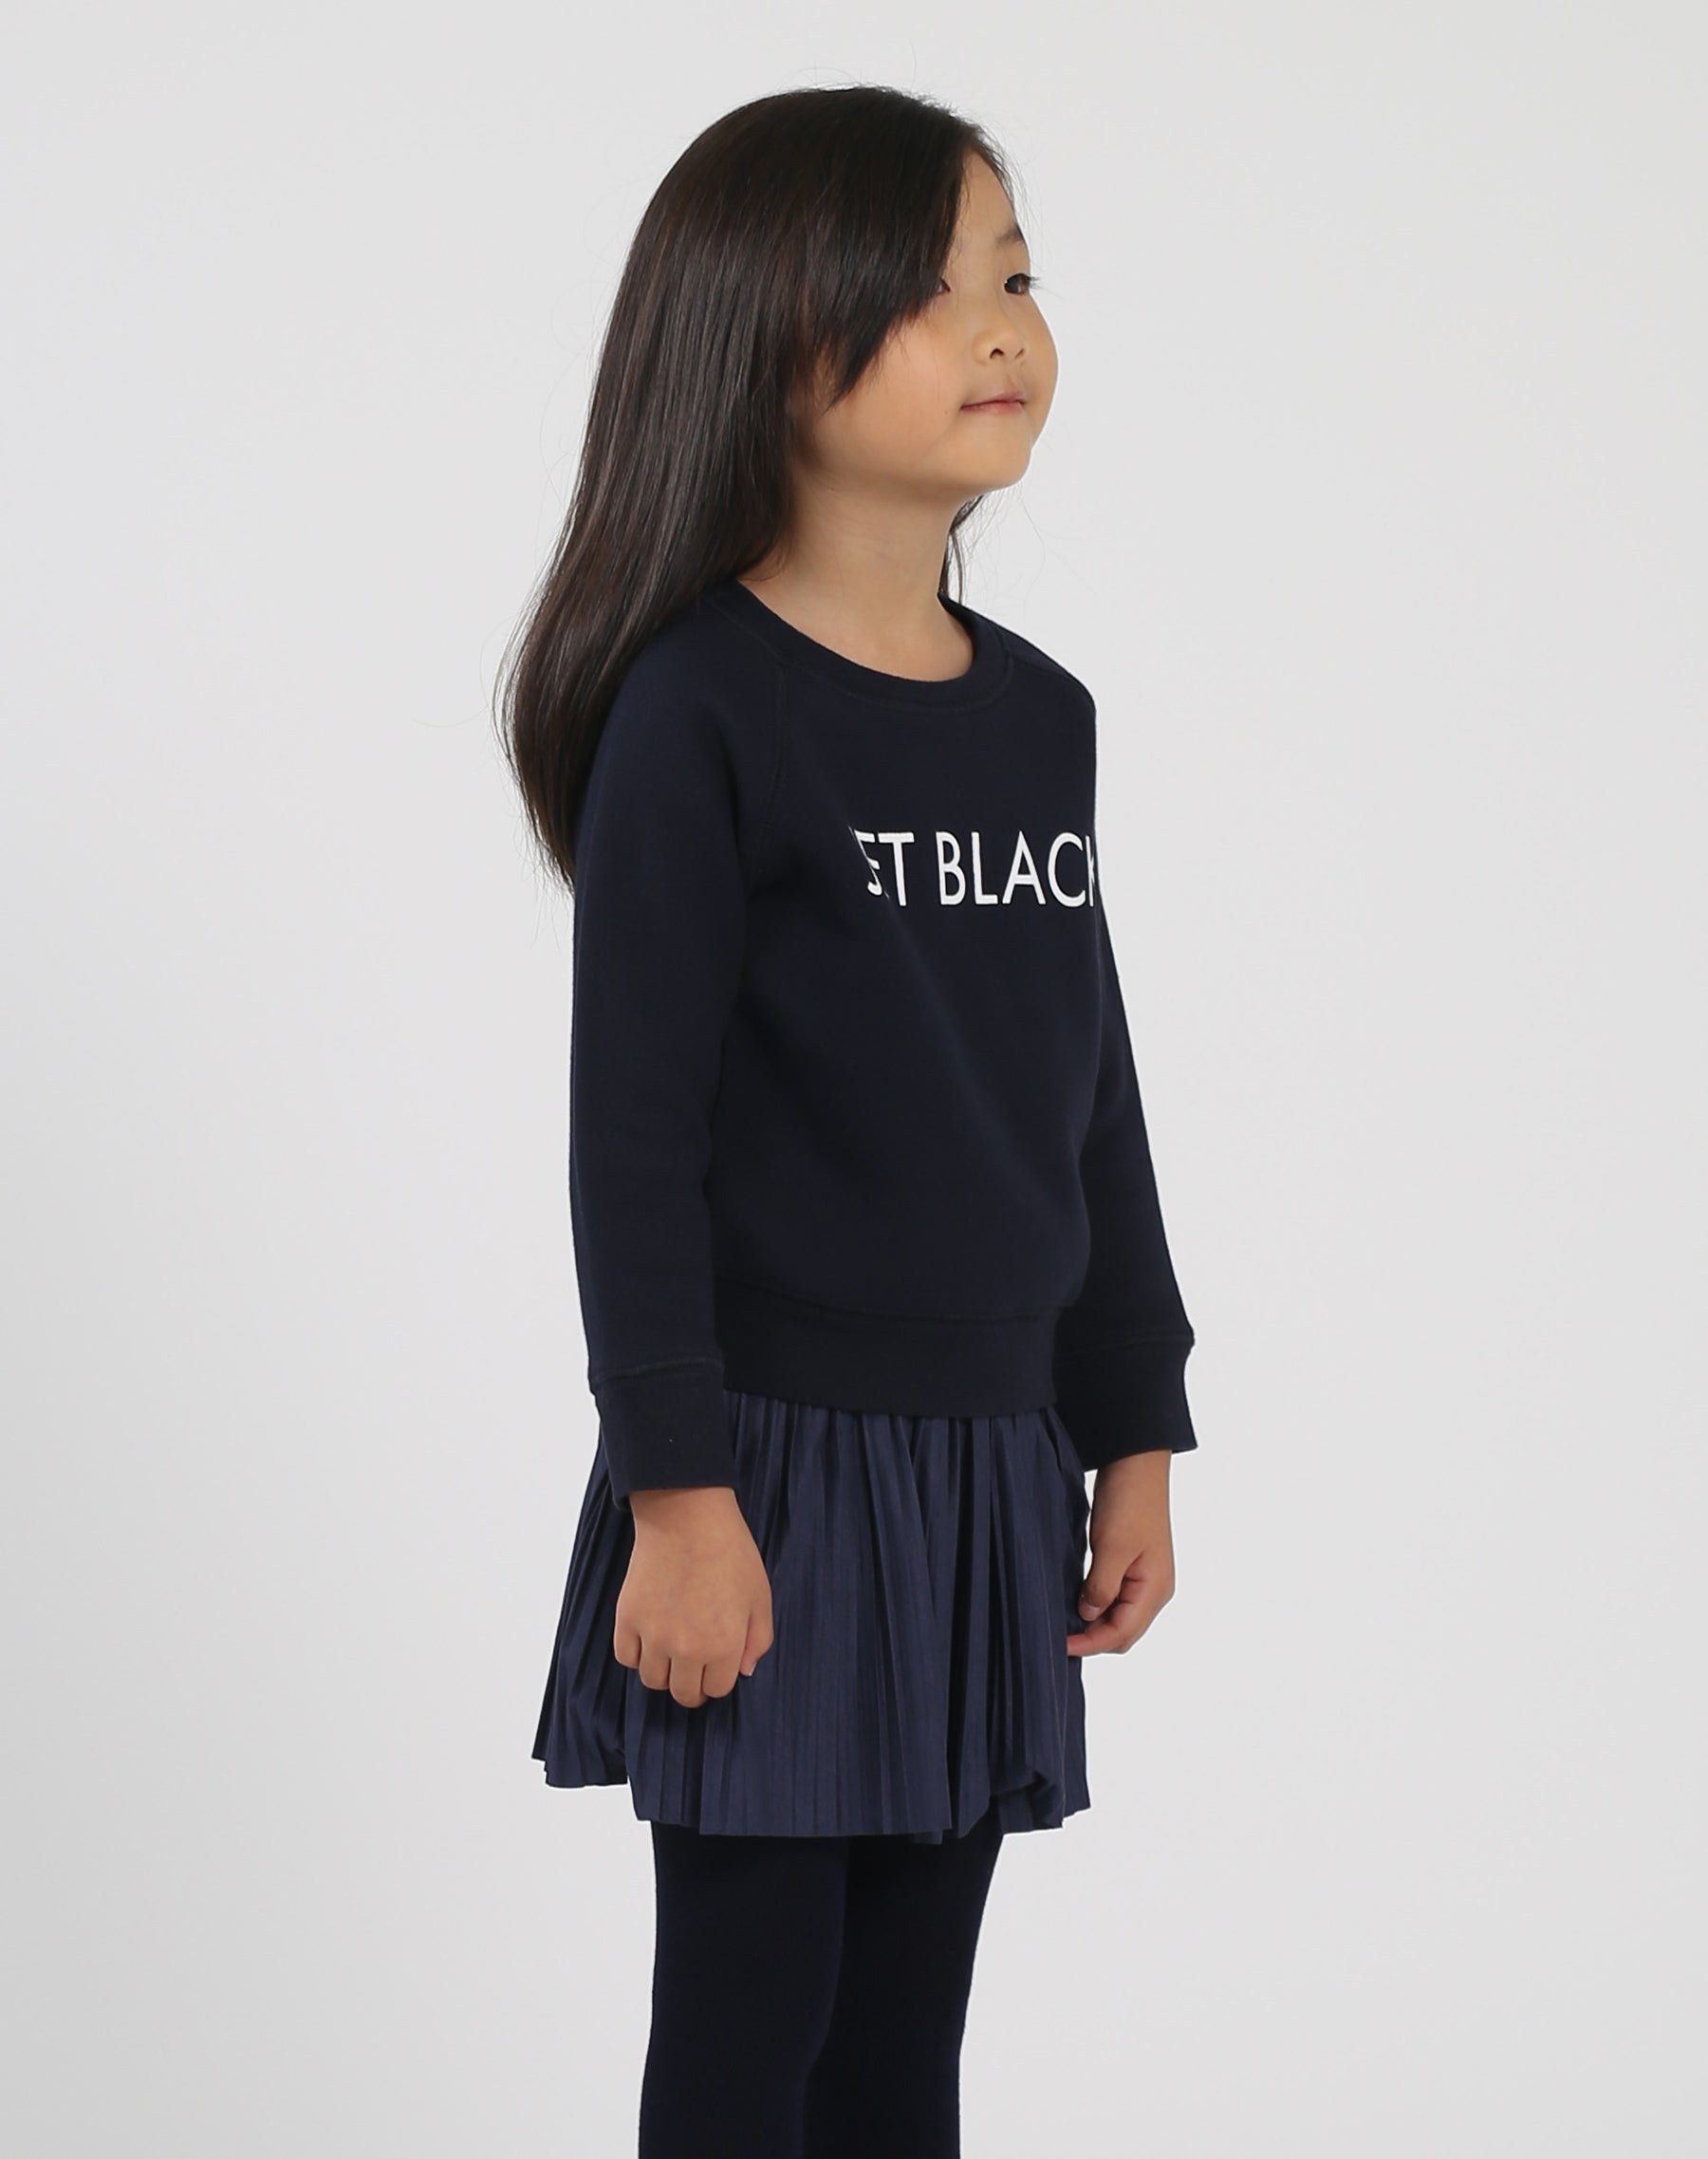 Side photo of the Jet Black Little Babes classic crew neck sweatshirt in navy by Brunette the Label.